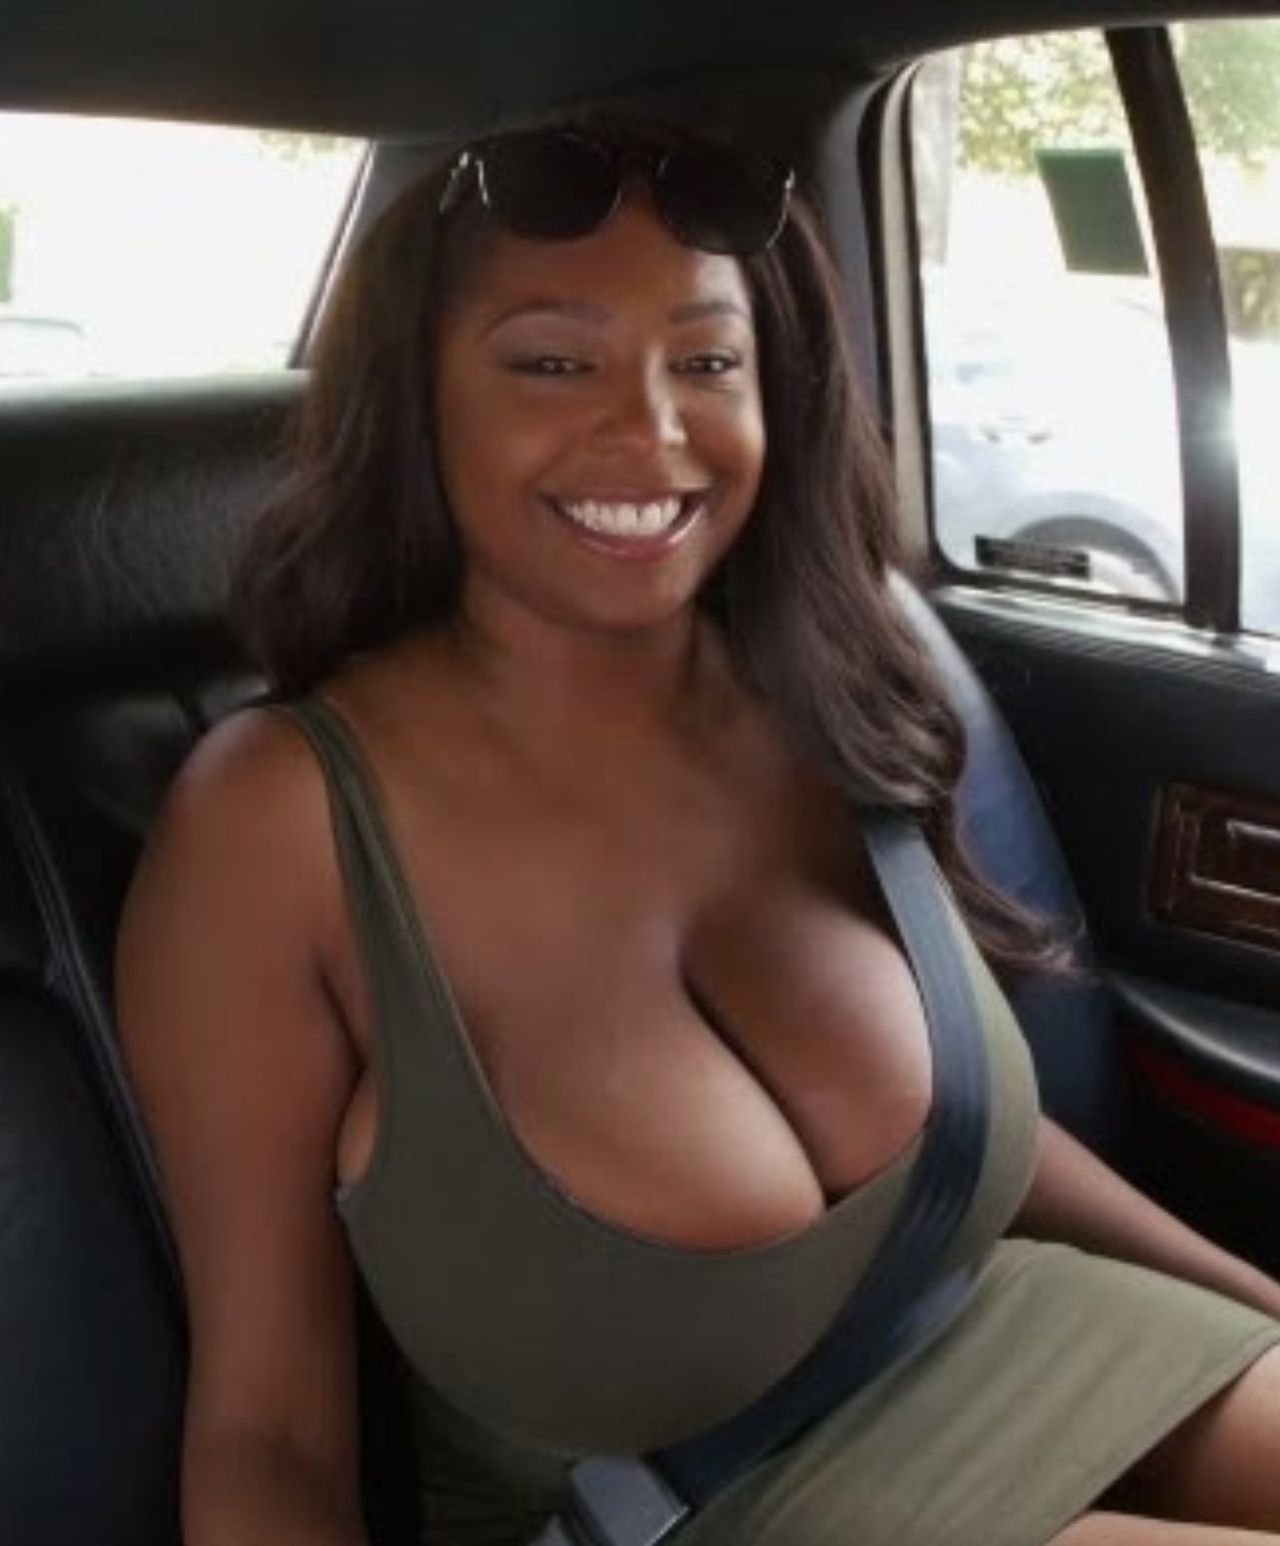 Low blogspot busty, meagan good fake porn pictures